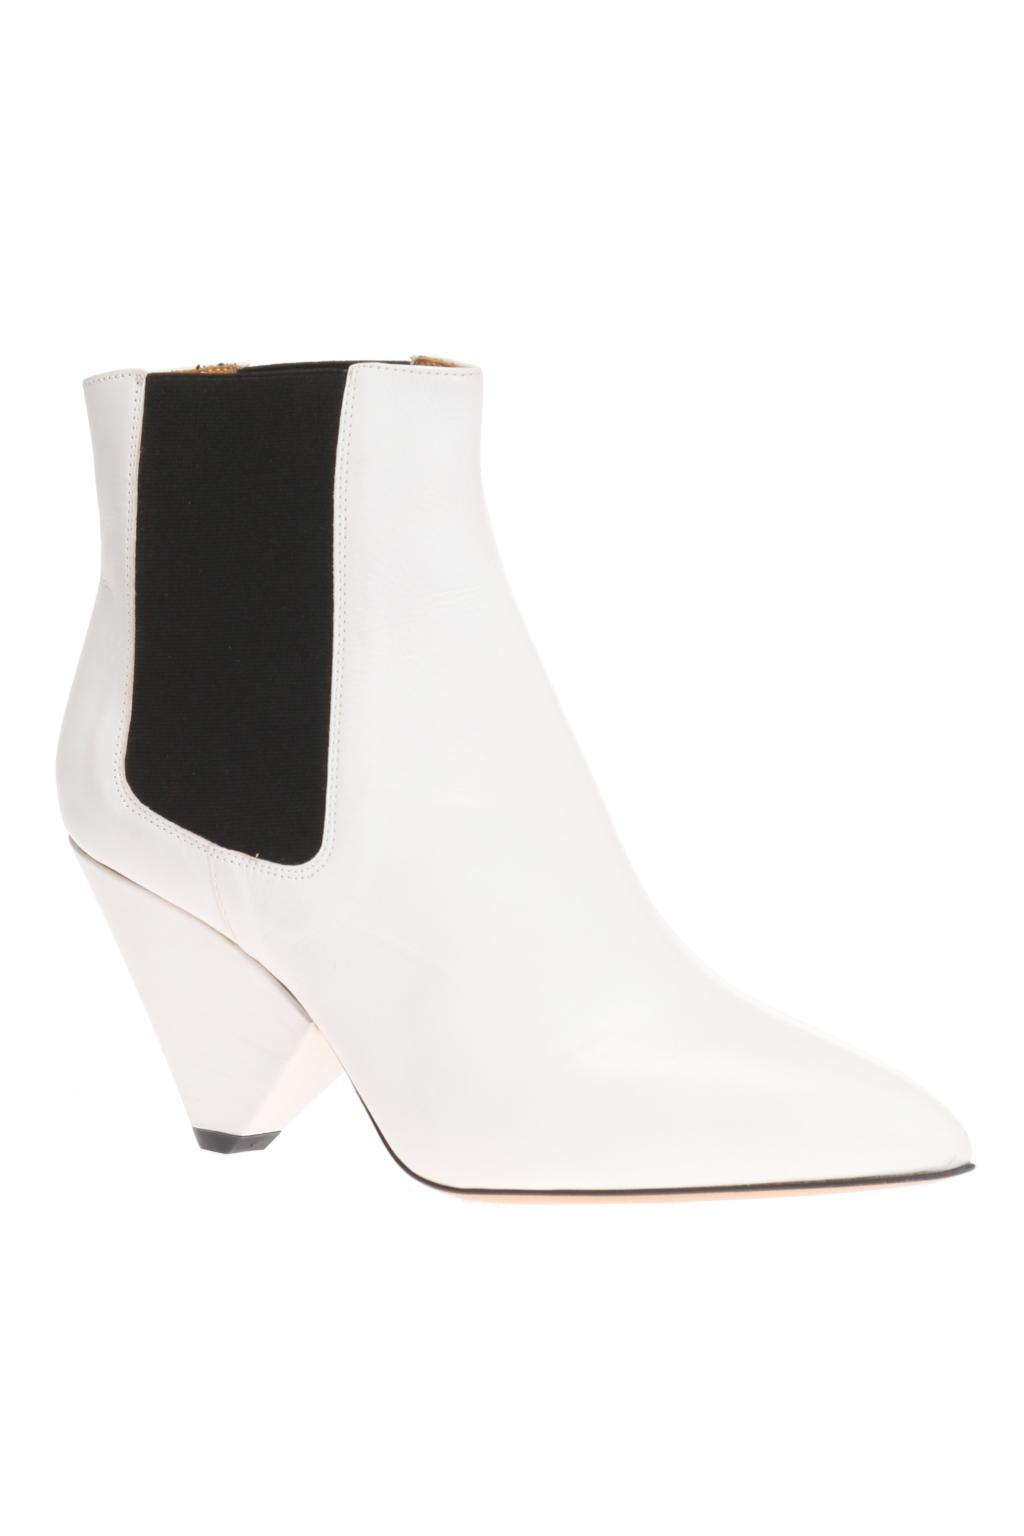 Isabel Marant Leather 'lashby' Heeled Ankle Boots in White